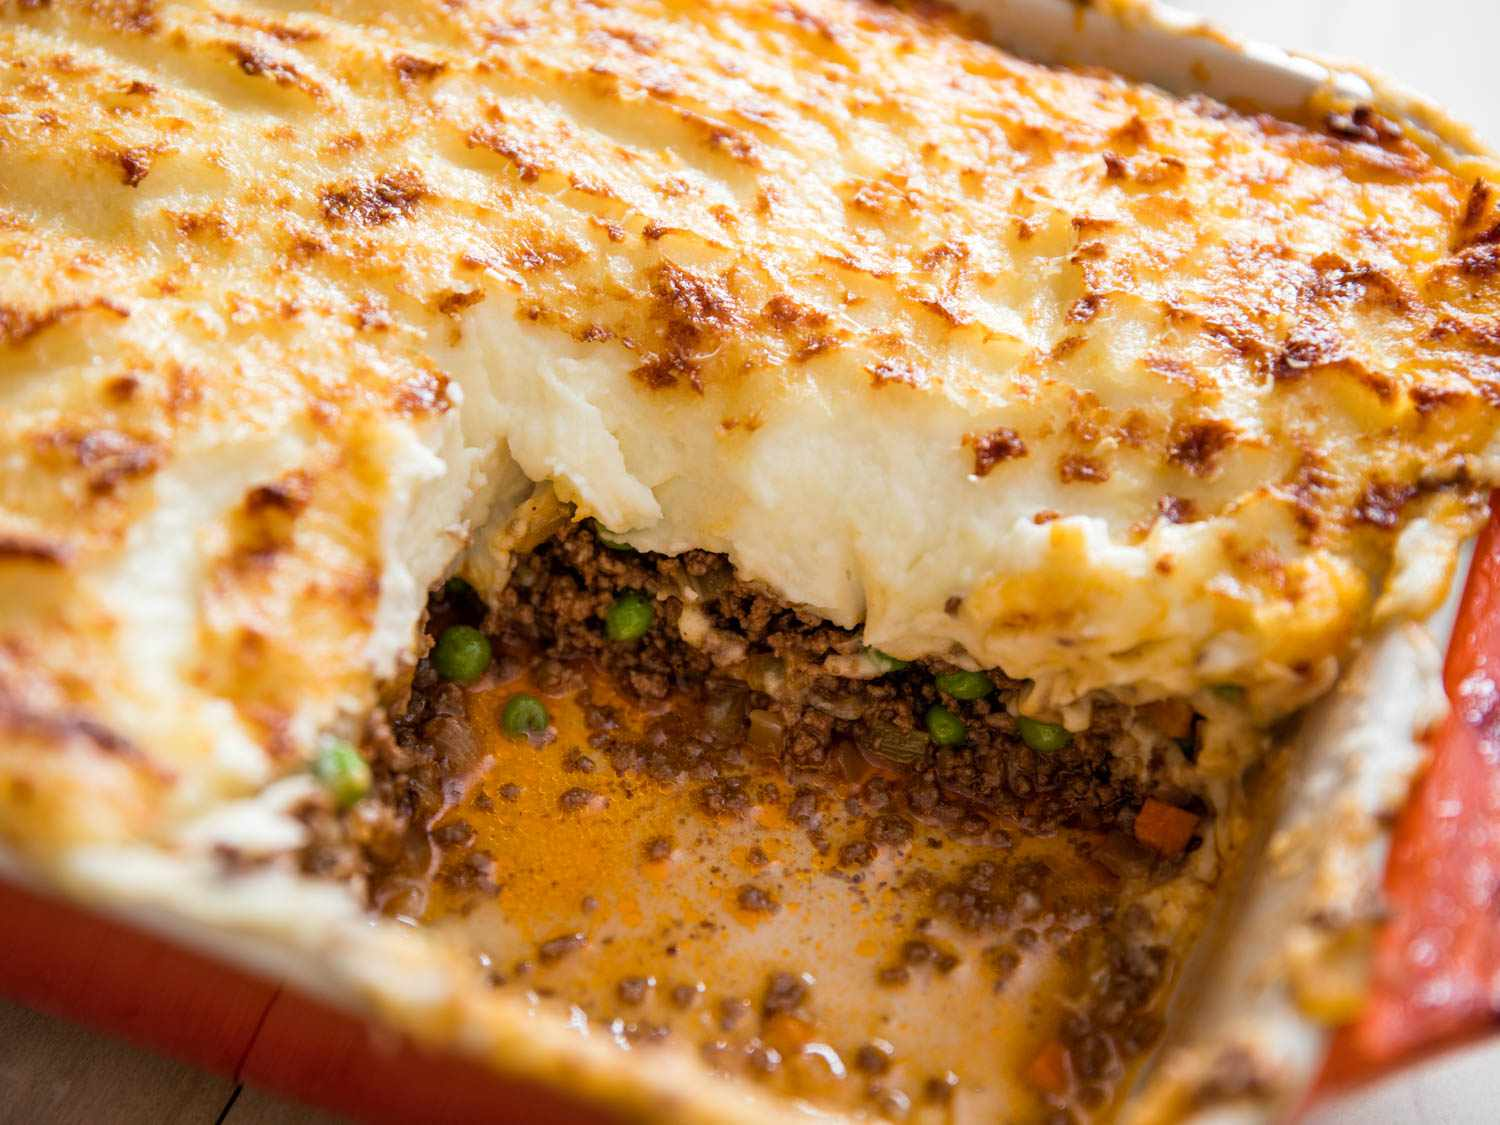 A baking dish of Classic Savory Shepherd's Pie (With Beef and/or Lamb)